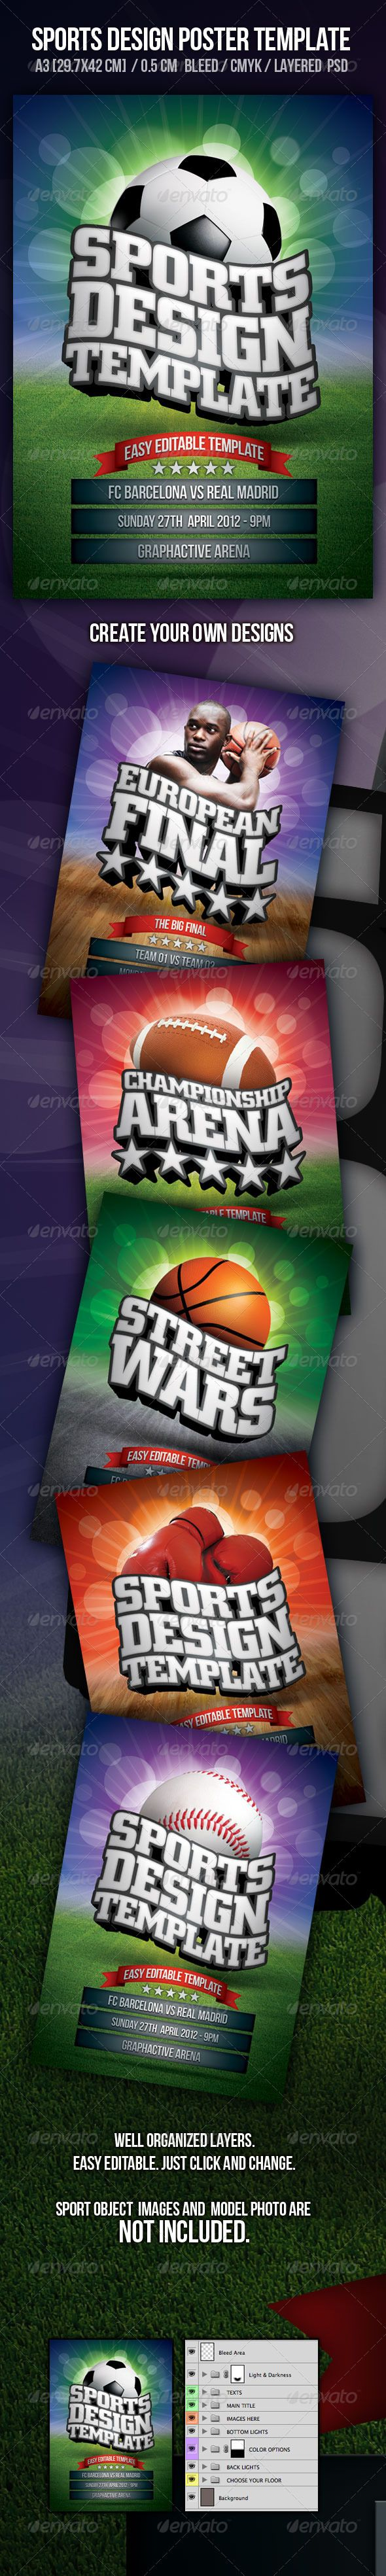 Poster design download - Sports Poster Design Template Tournament College Event Click Here To Download